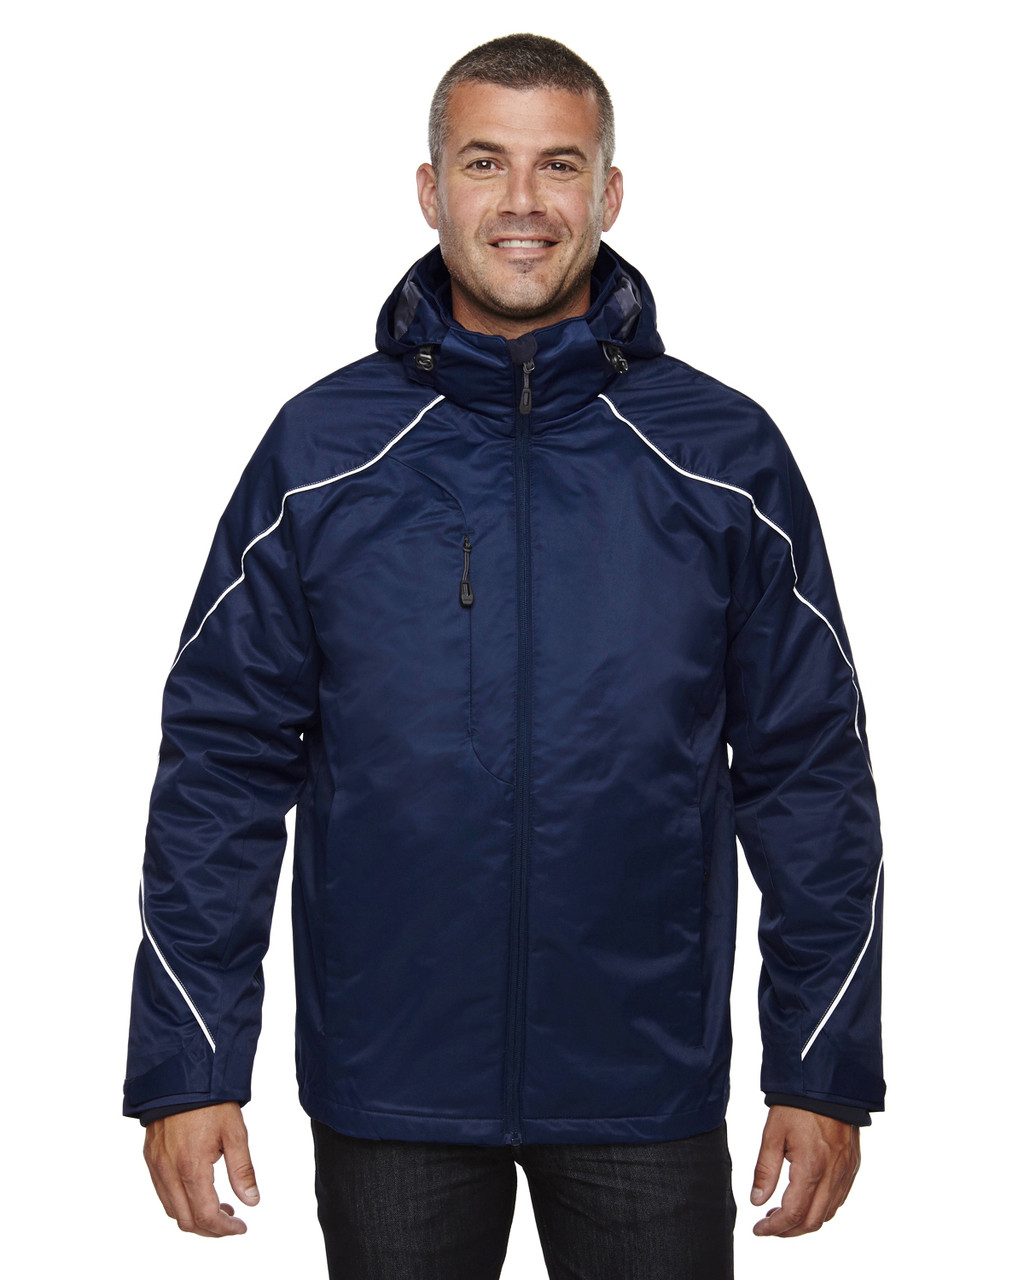 Night 88196 Ash City - North End Angle 3-in-1 Jacket with Bonded Fleece Liner | Blankclothing.ca